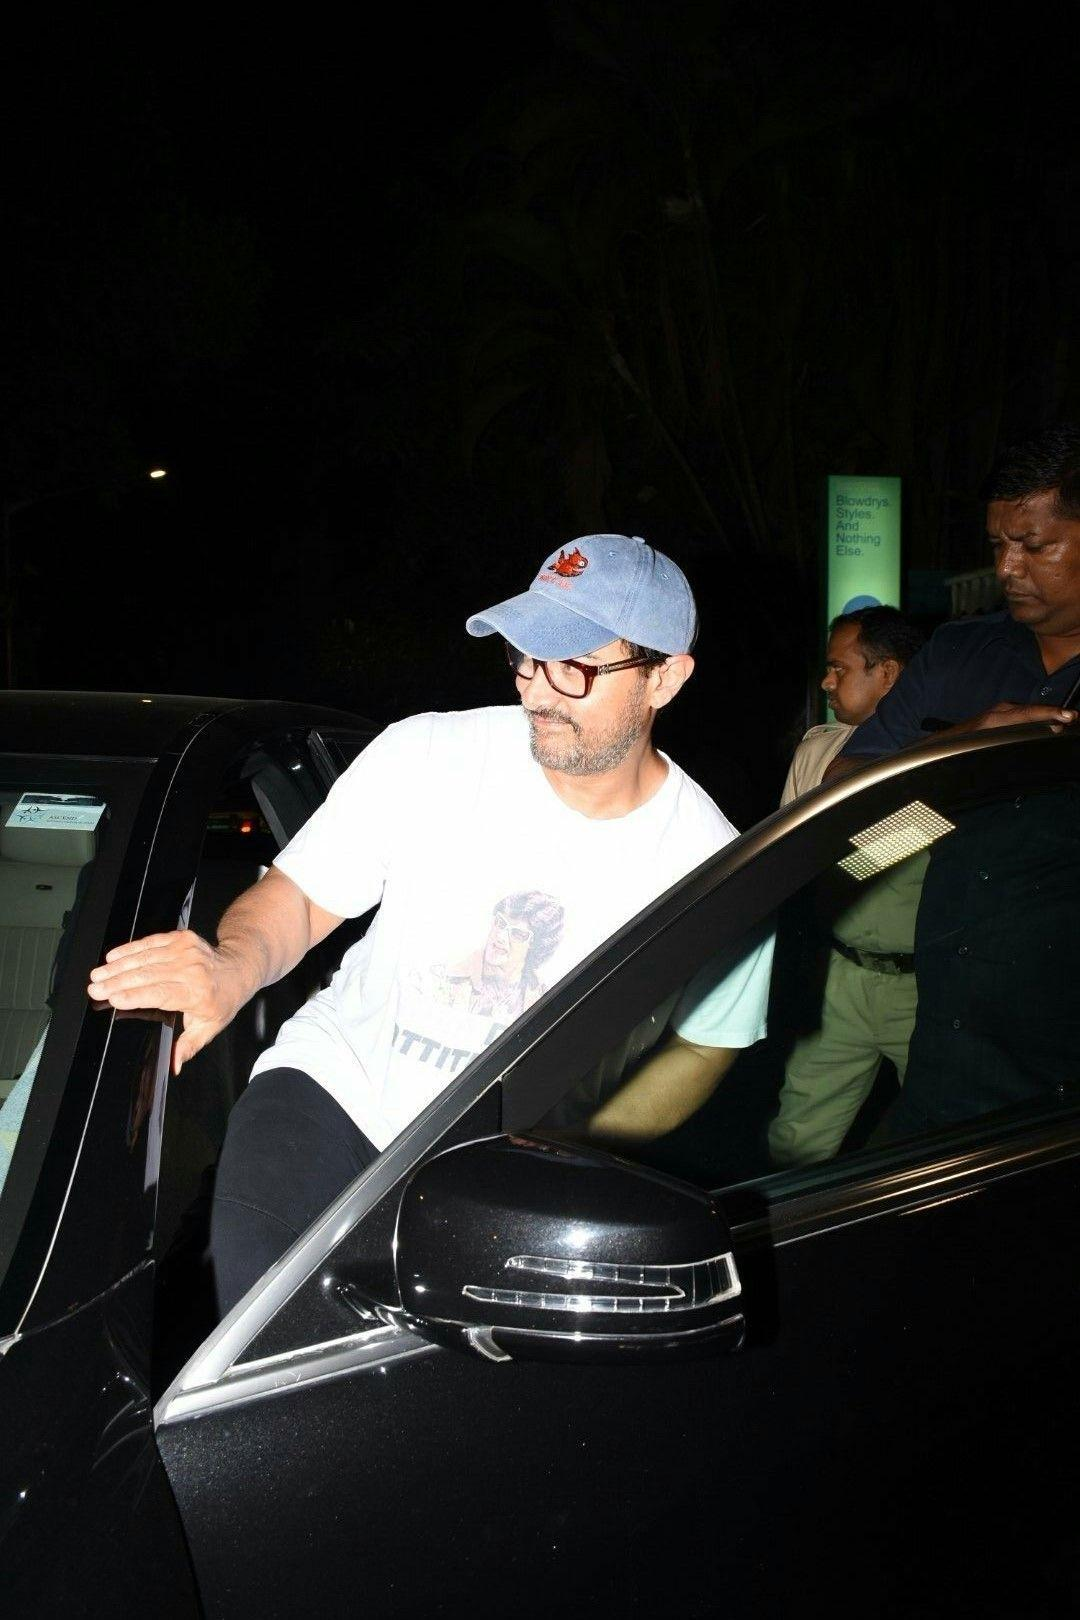 Aamir Khan spotted outside a Juice shop by night in Mumbai